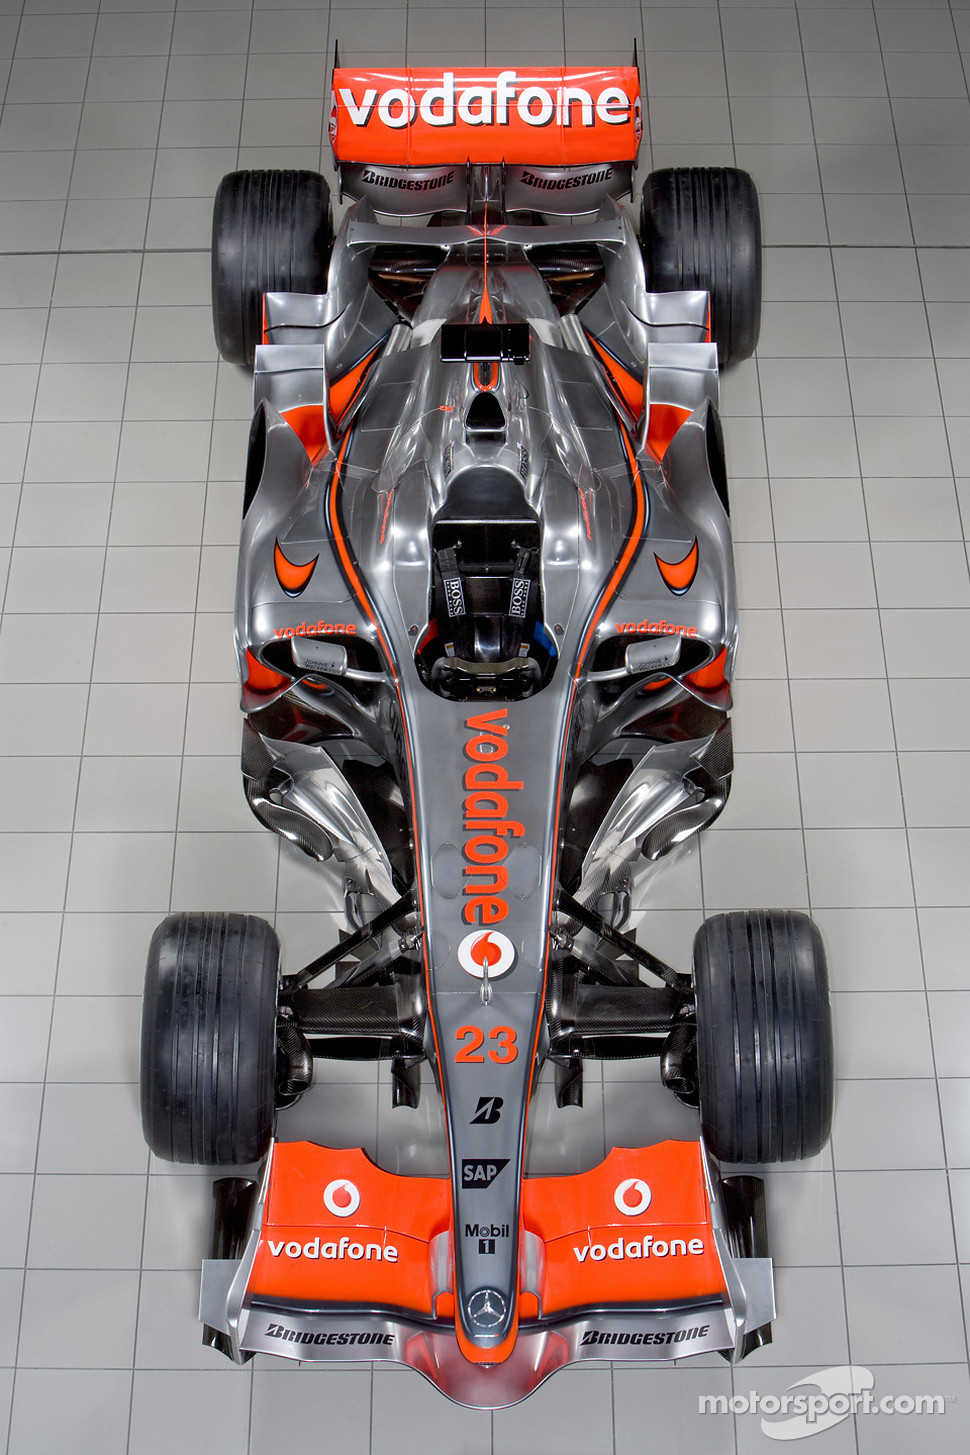 The new McLaren Mercedes MP4-23